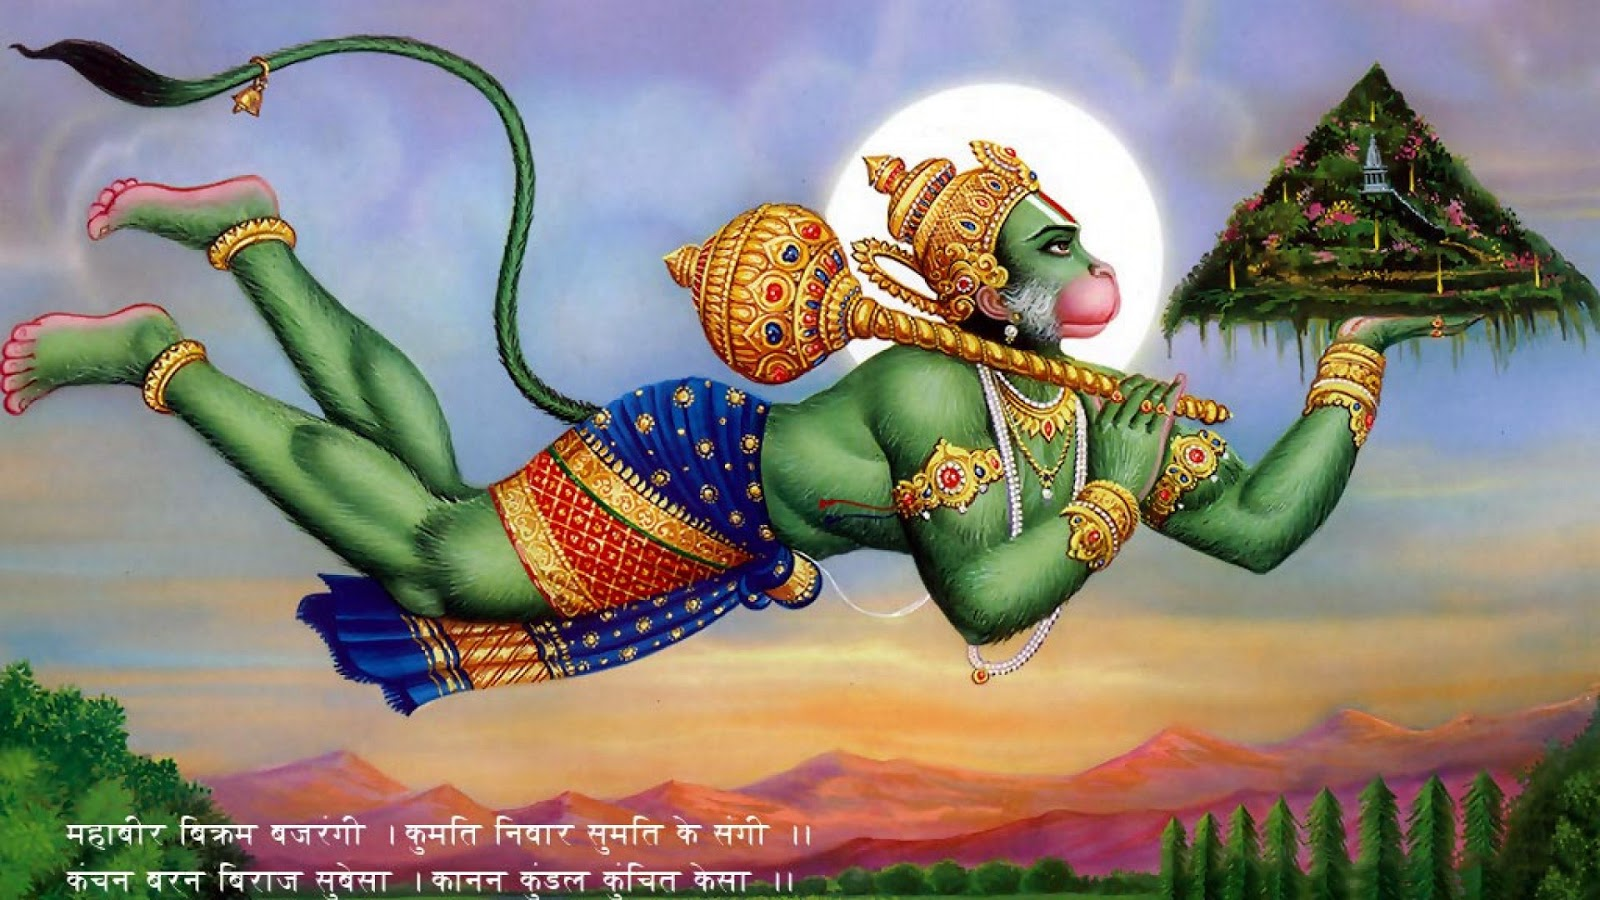 hanuman ji flying in the sky hd photos for facebook